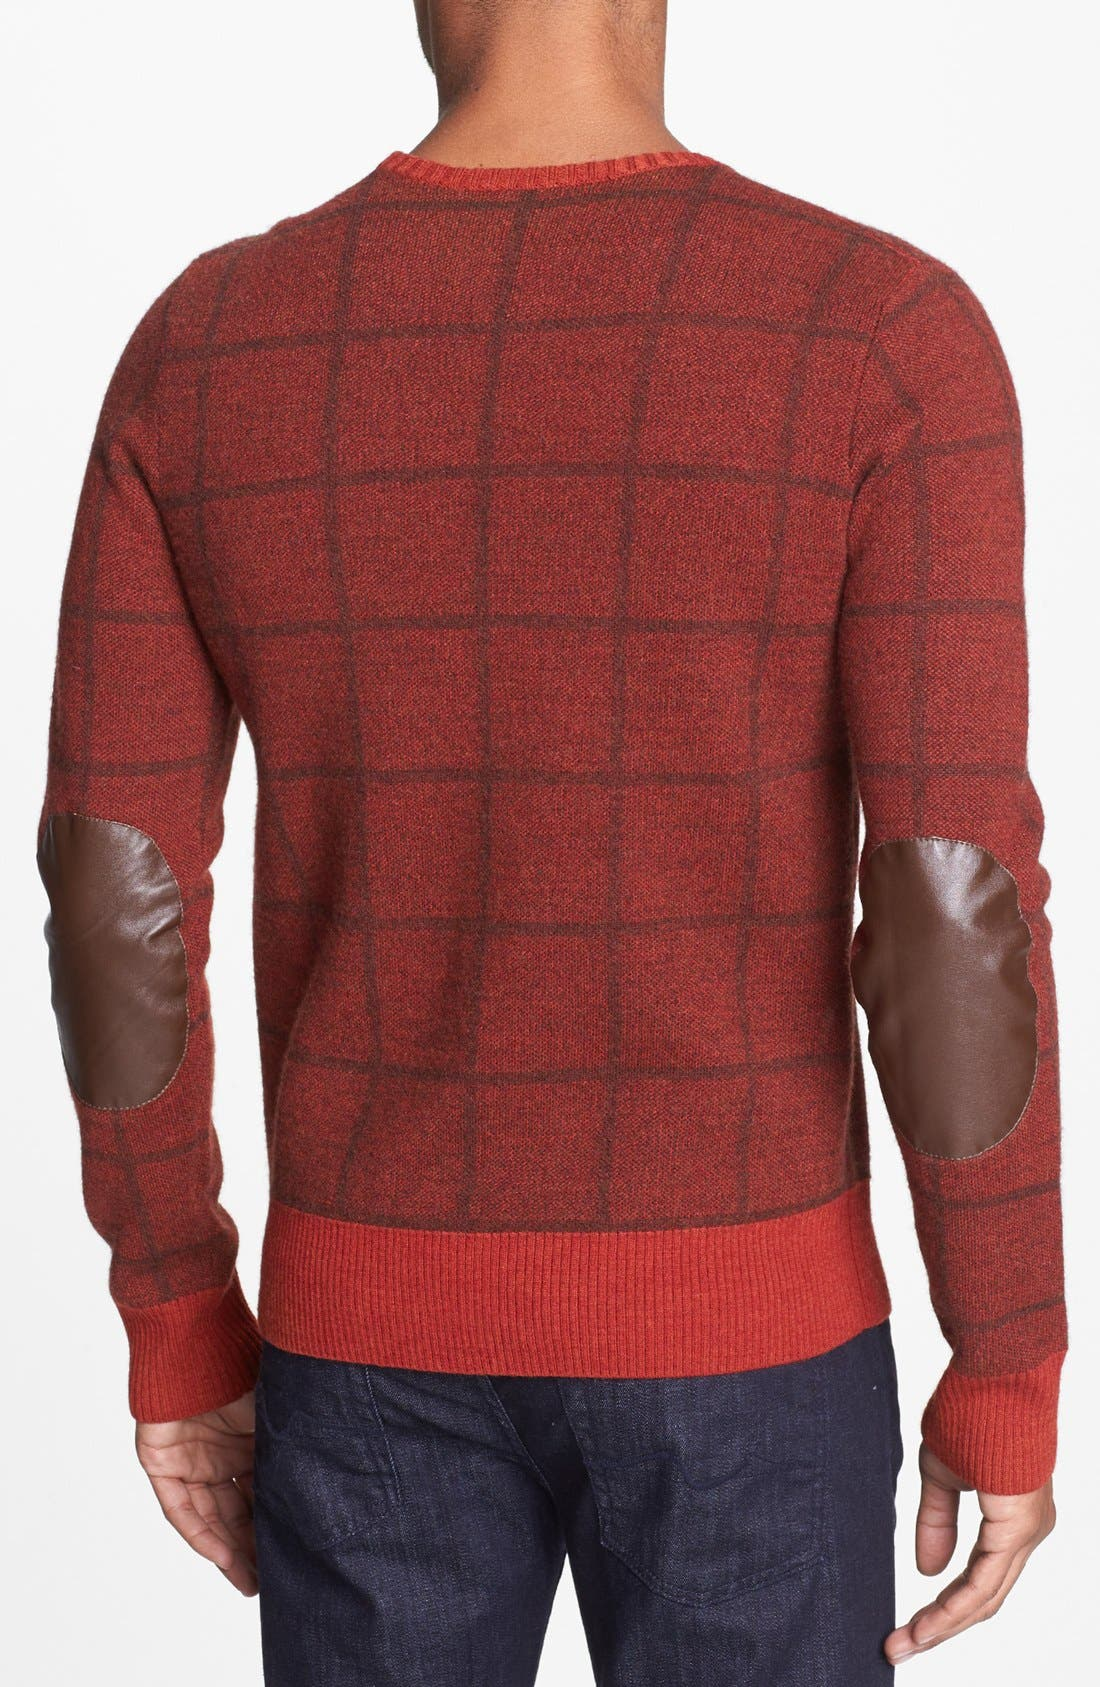 Alternate Image 2  - J. Press York Street Windowpane Merino Wool Crewneck Sweater